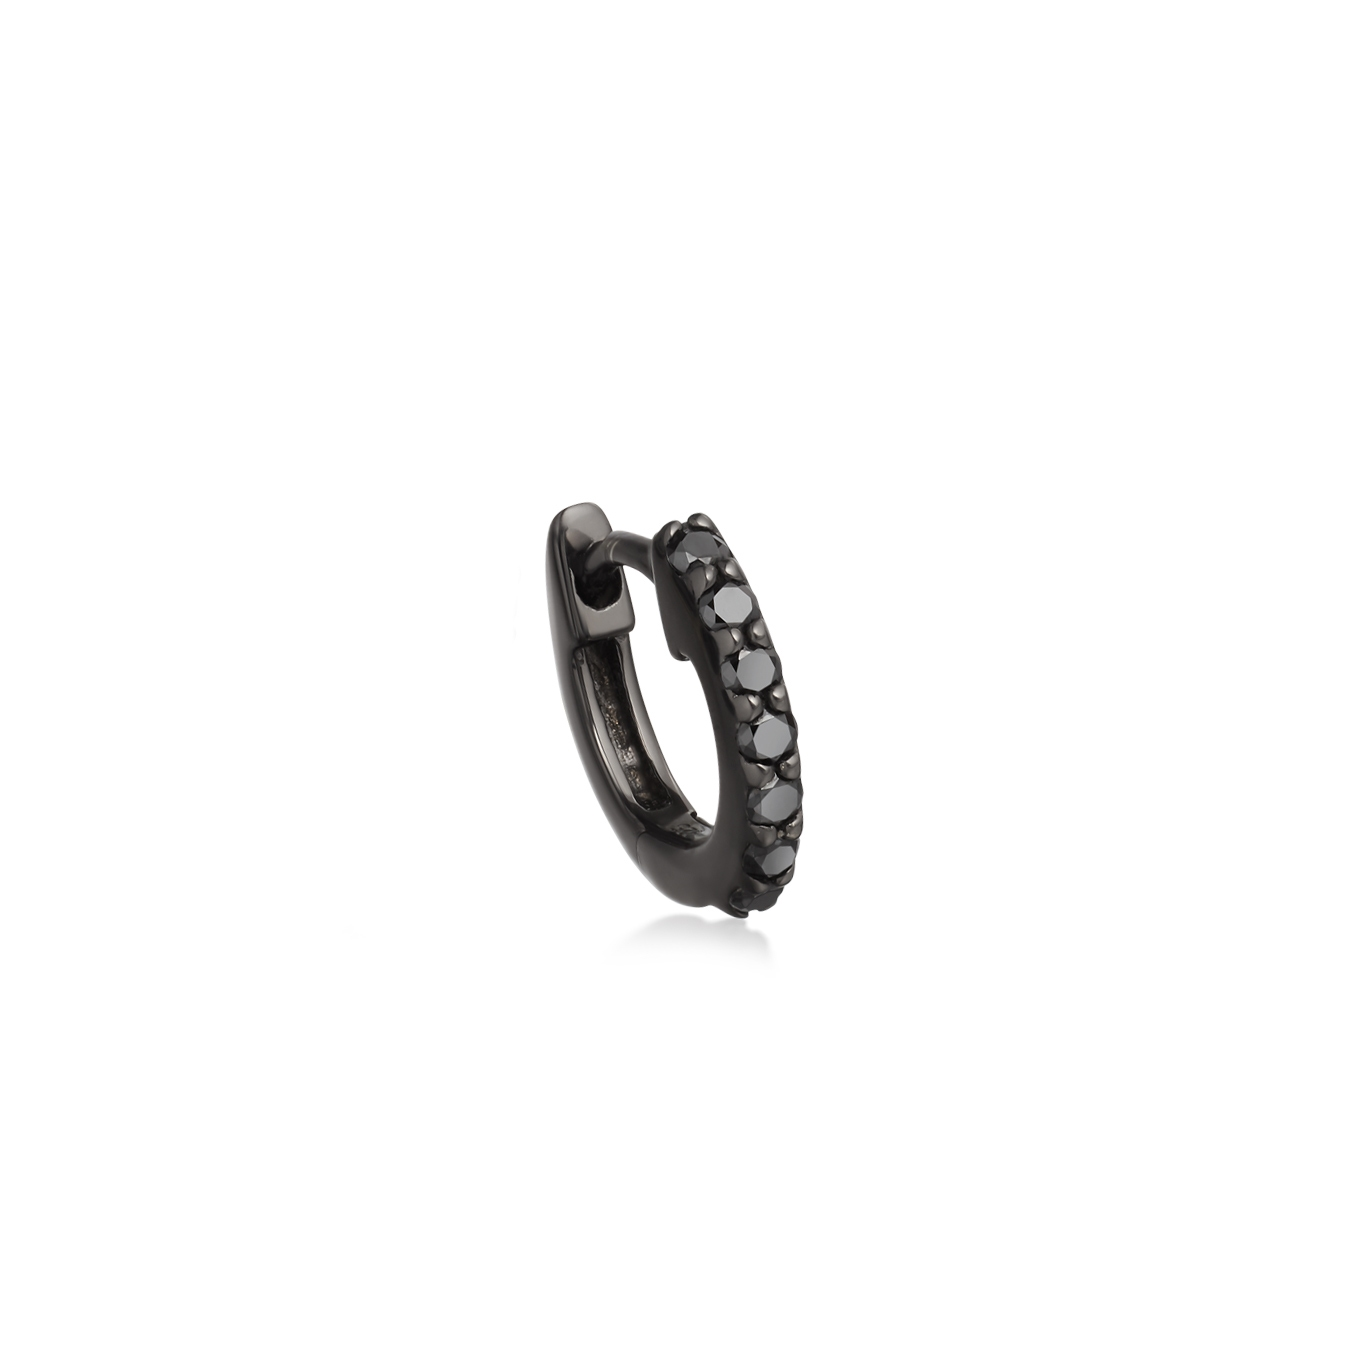 Mini Halo Black Diamond Hoop Single Earring